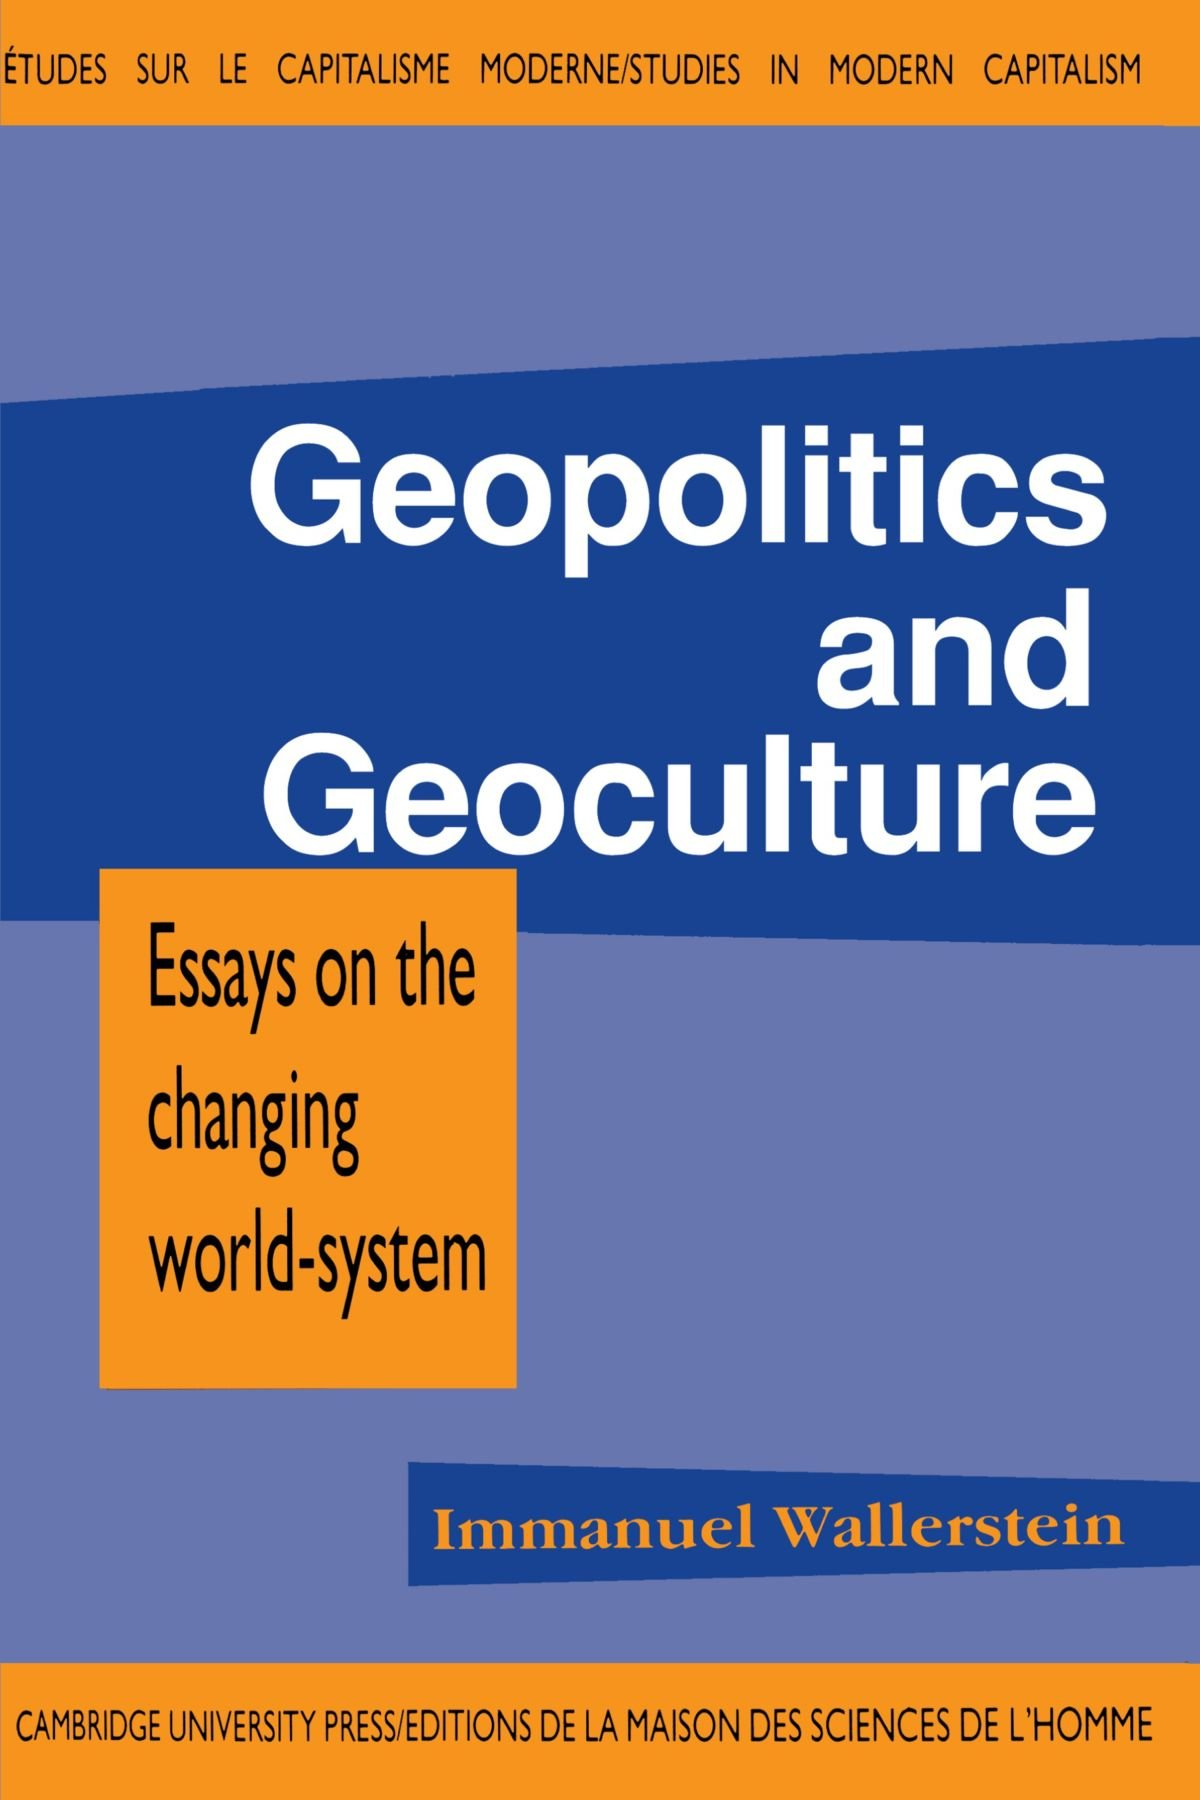 geopolitics and geoculture essays on the changing world system geopolitics and geoculture essays on the changing world system studies in modern capitalism immanuel maurice wallerstein 9780521406048 com